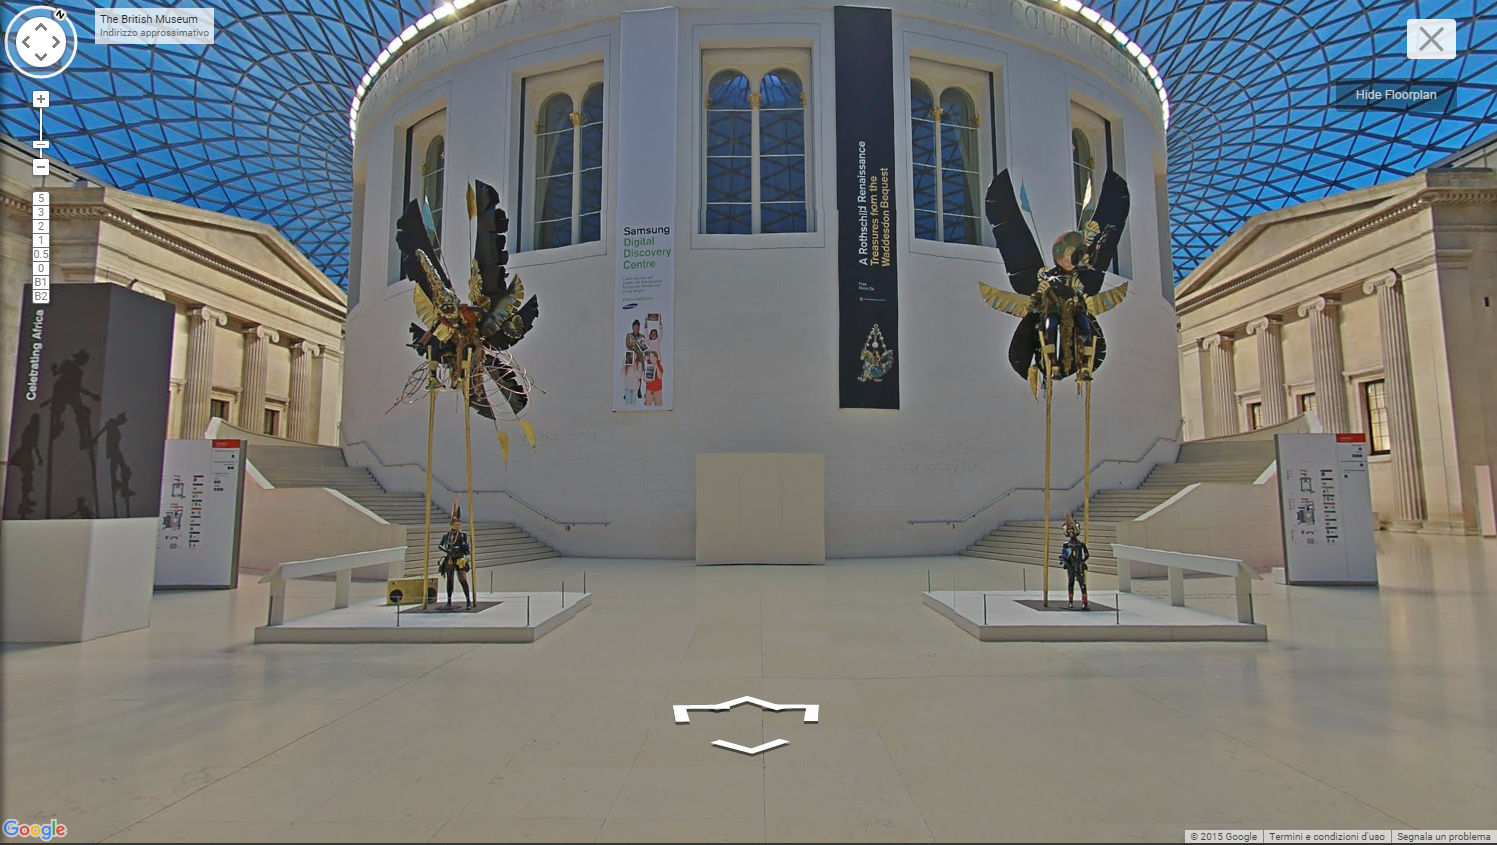 the british museum google cultural street view